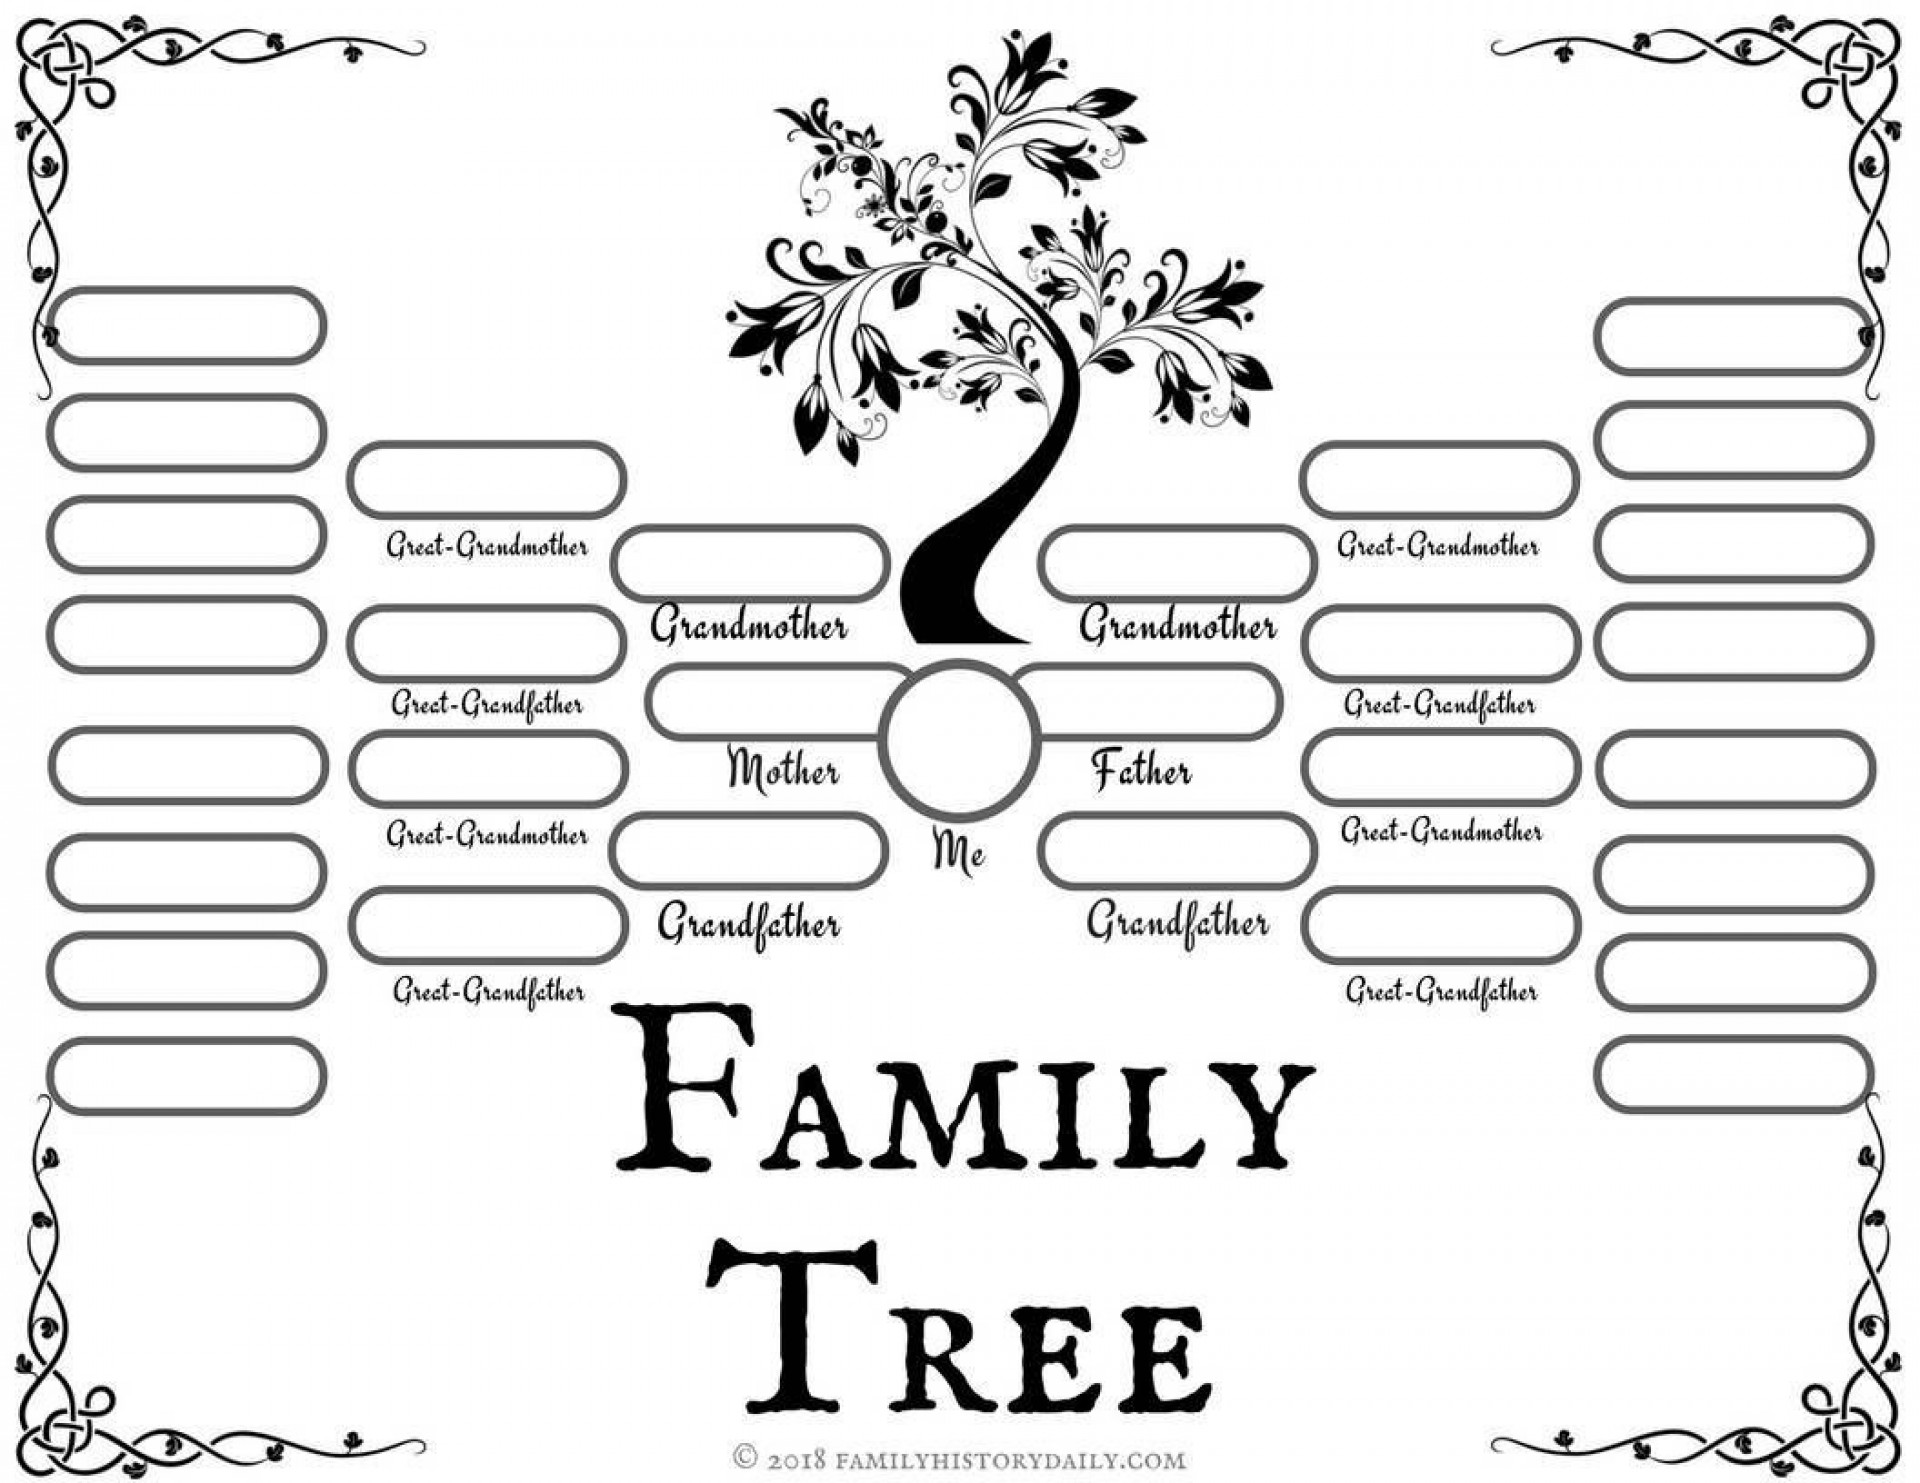 000 Shocking Family Tree Template Word Free Download Idea 1920